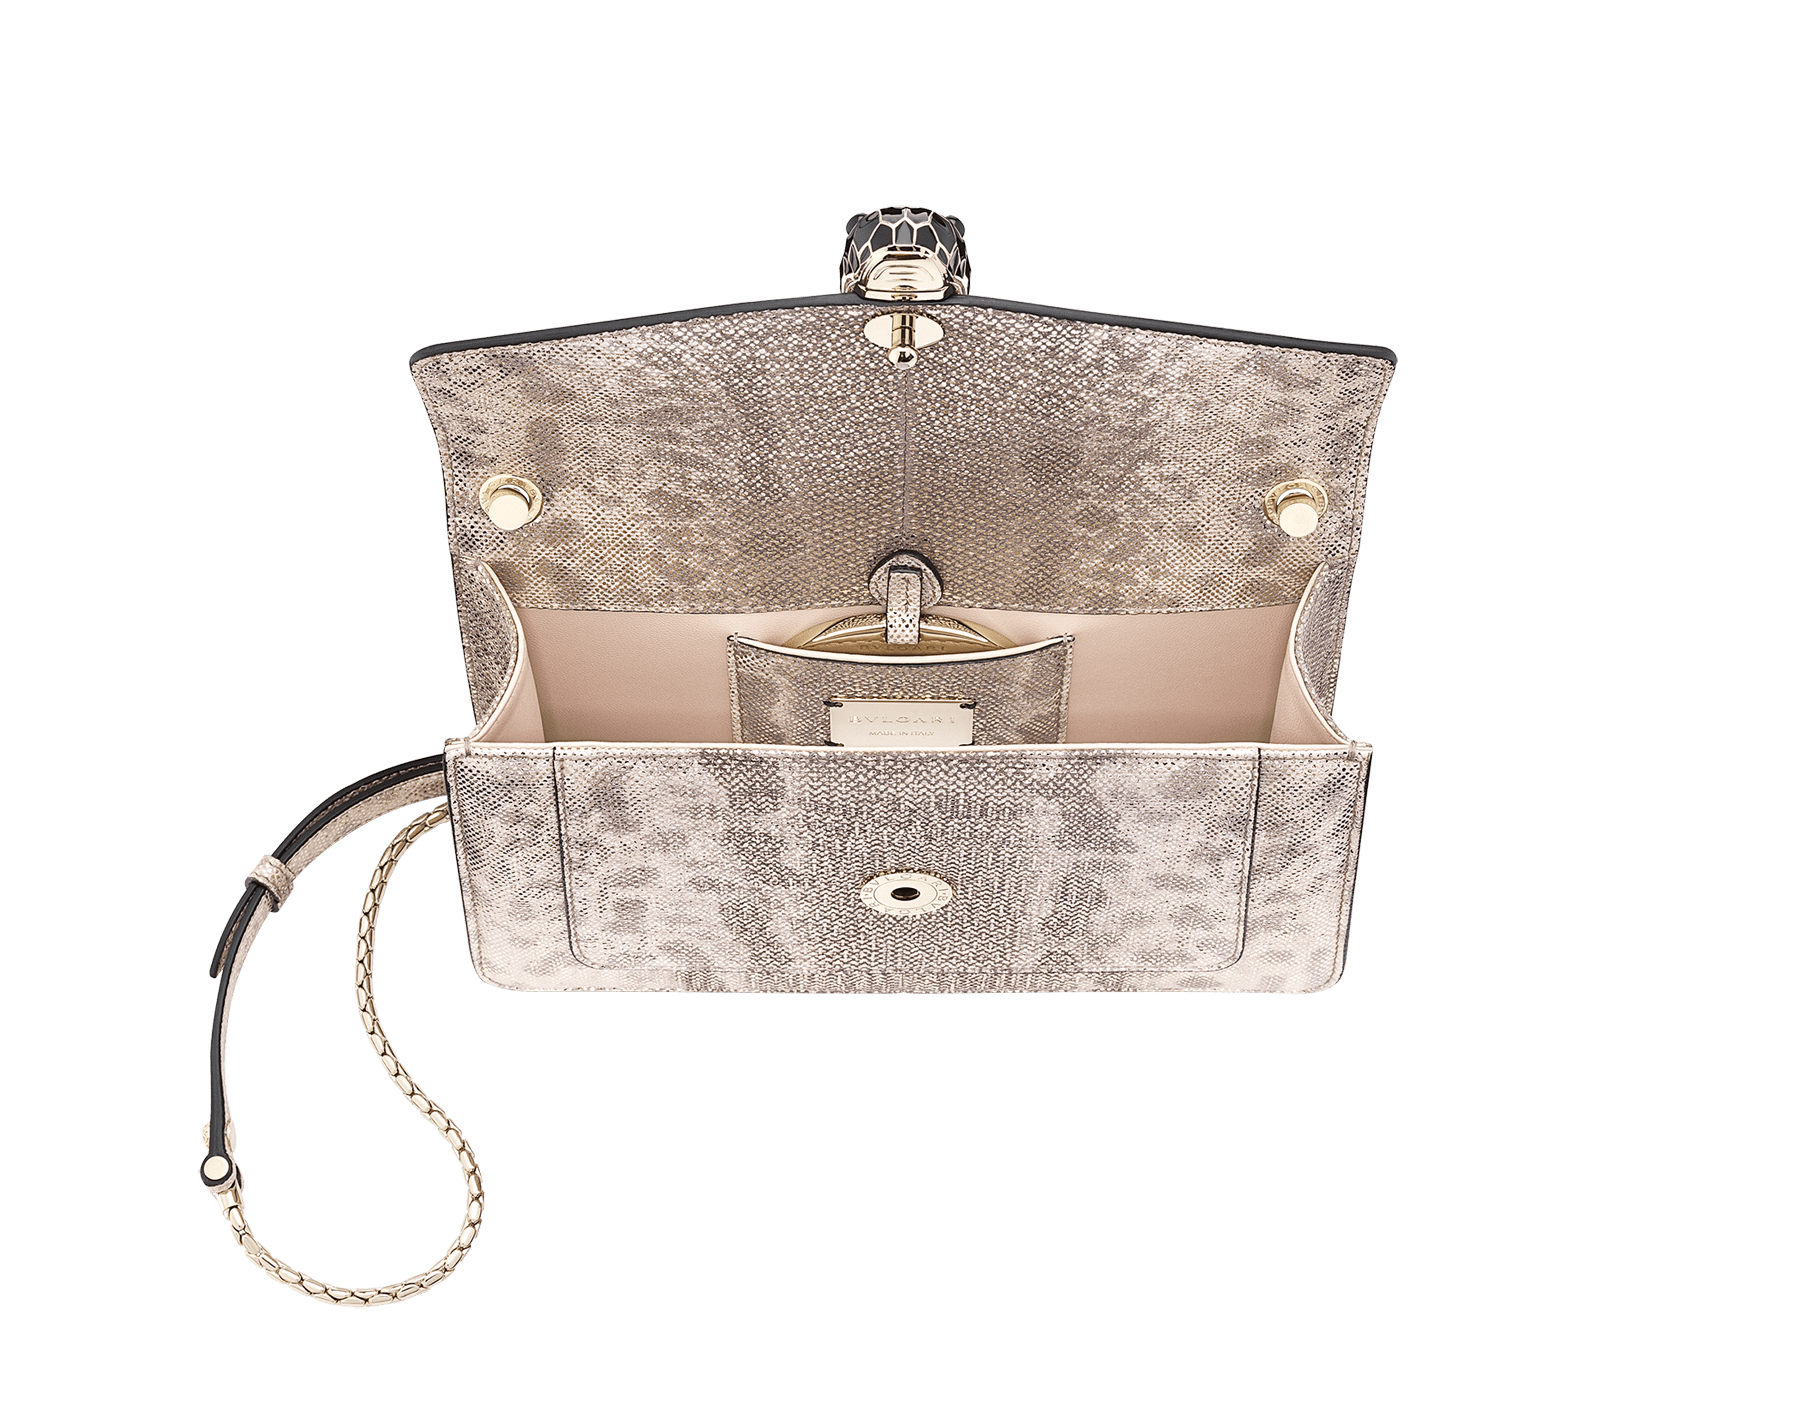 """""""Serpenti Forever"""" crossbody bag in milky opal metallic karung. Iconic snake head closure in light gold-plated brass enriched with black and glitter milky opal and black onyx eyes. 289556 image 4"""